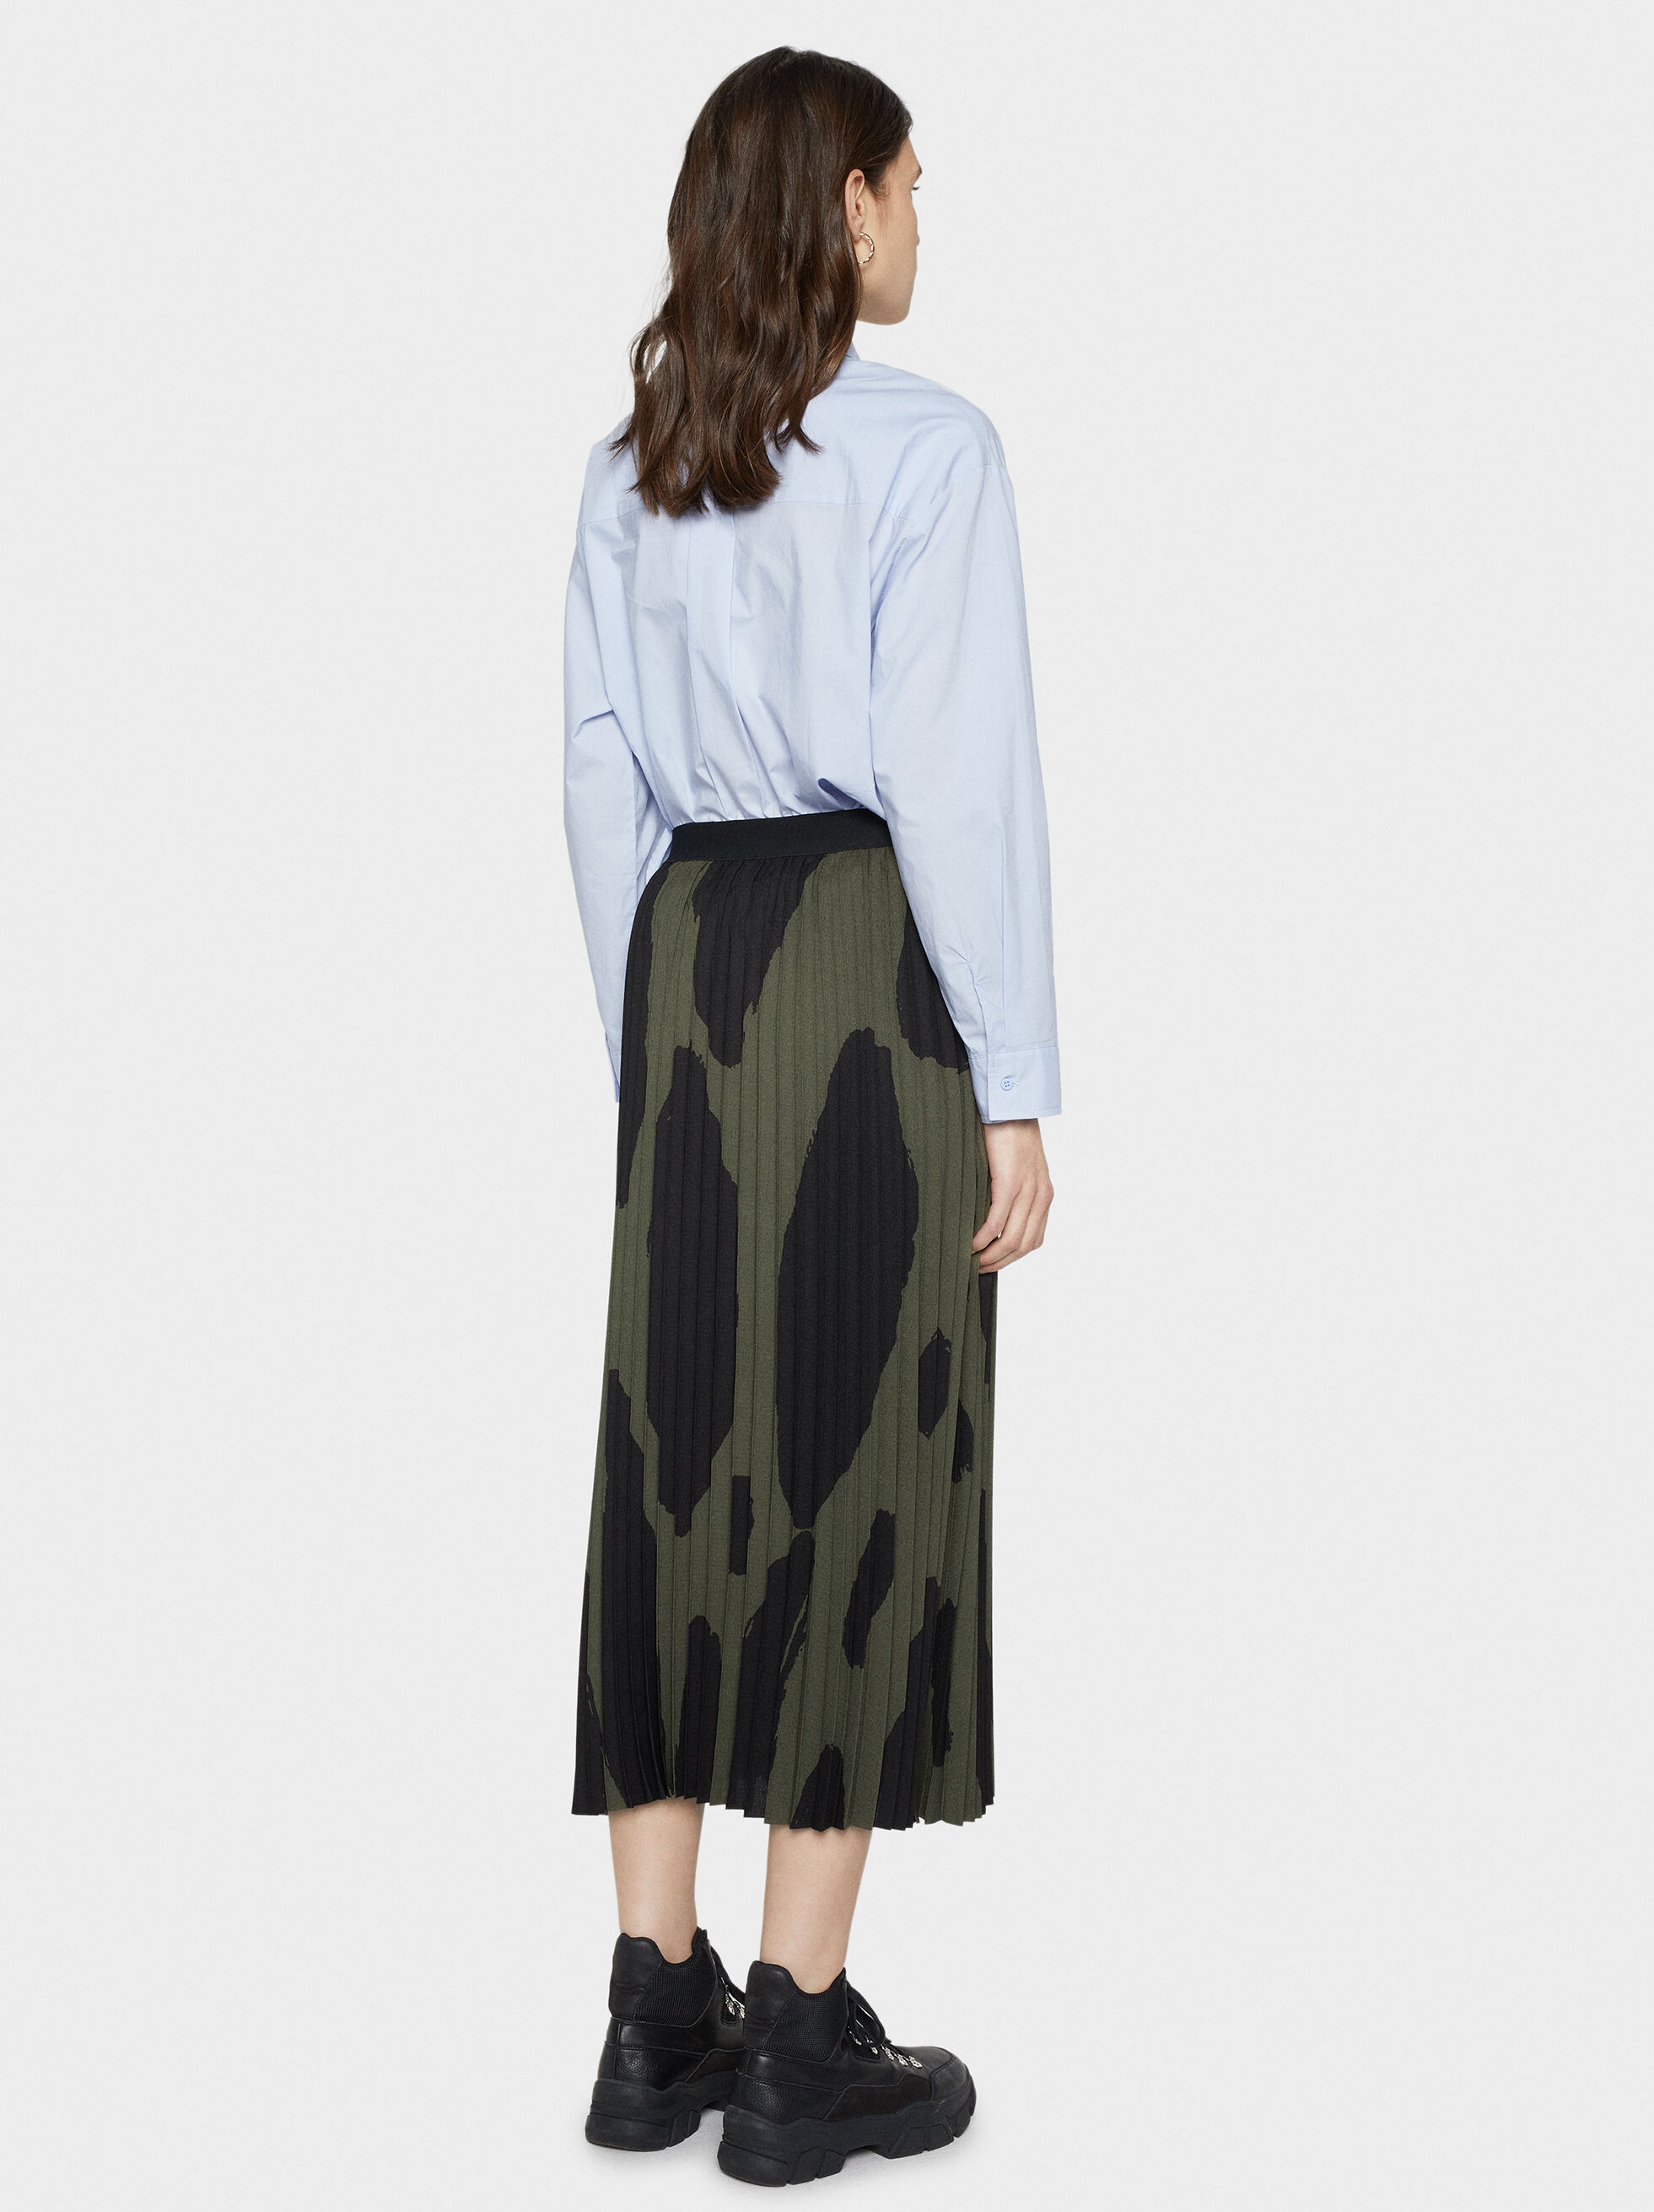 Printed Pleated Skirt, Khaki, hi-res